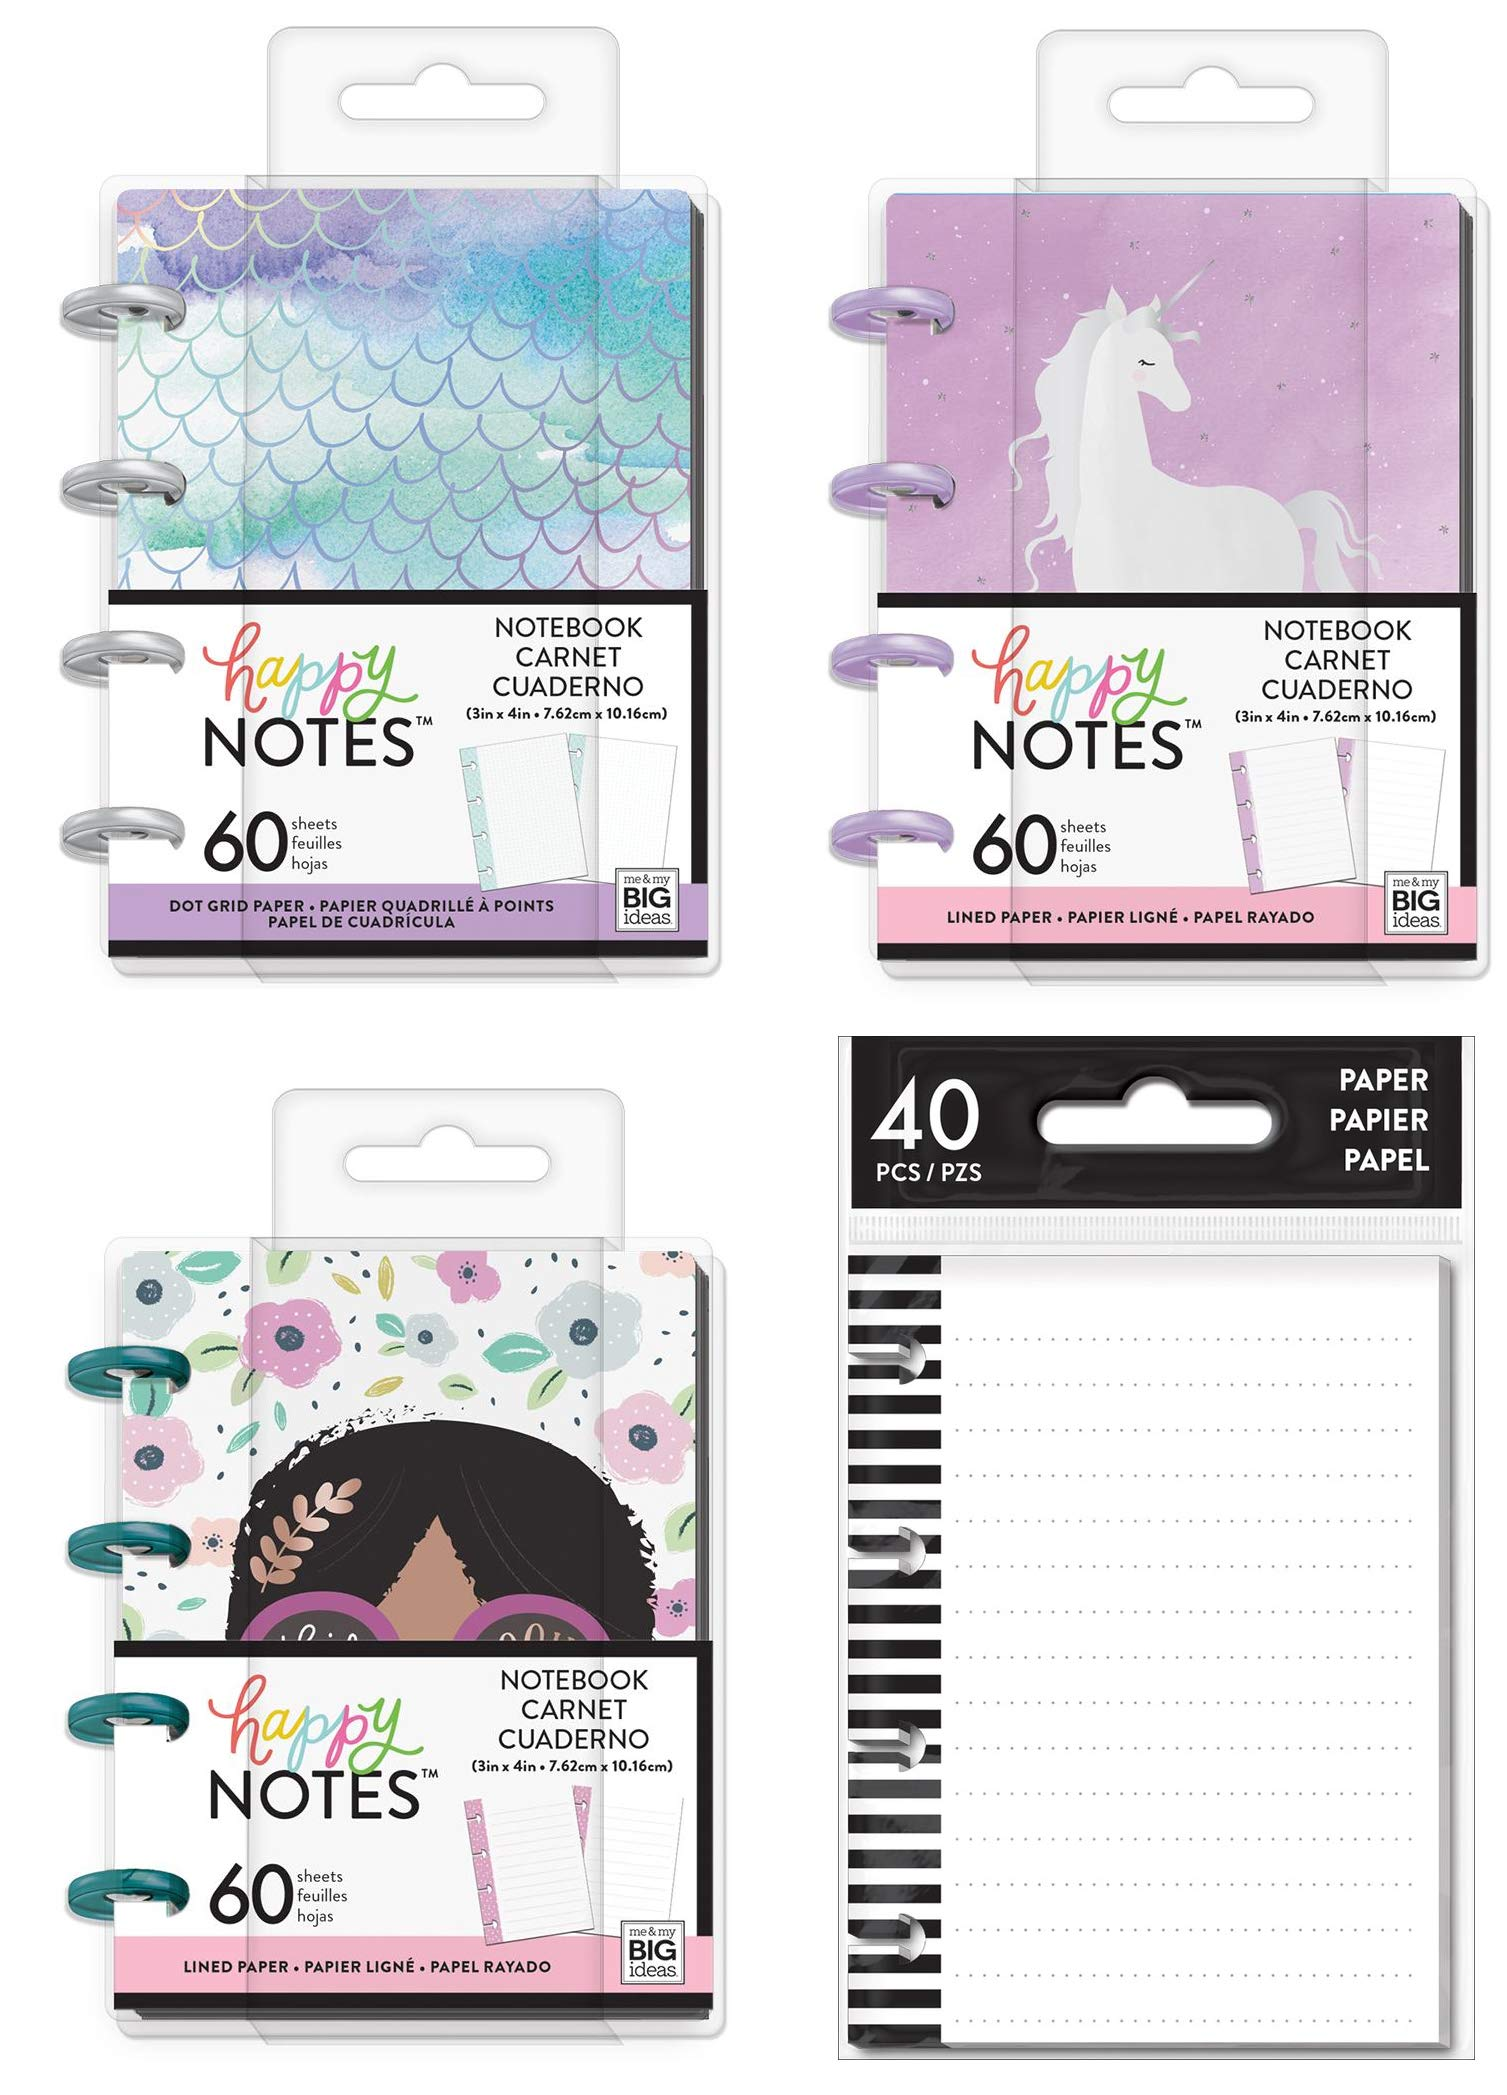 Micro Happy Notes 3 x 4 Inch Memo Book Set - Mermaid, Wonder Seeker, Squad Goals and Tiny Lined Fill Paper - 4 MAMBI Keepsake Size Items